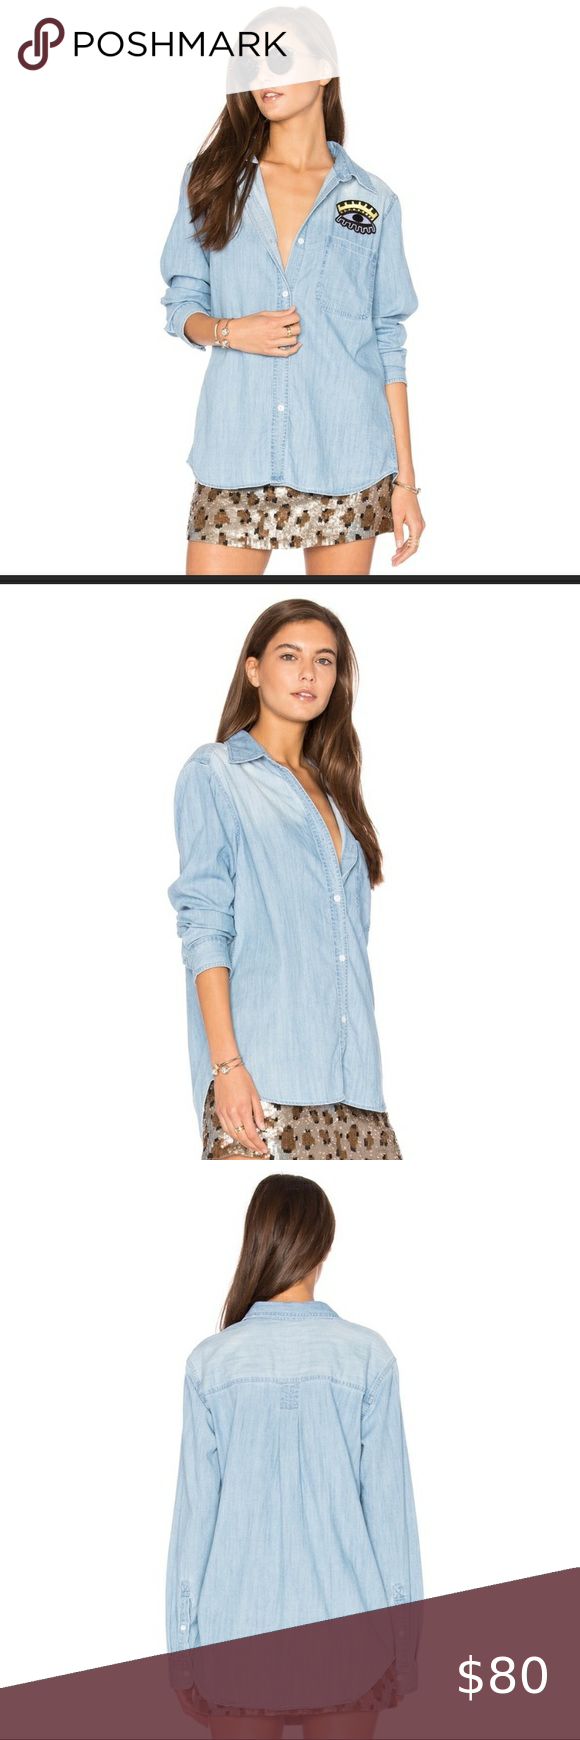 "RAILS embroidered Cleopatra Eye button down shirt RAILS soft chambray button up collared denim shirt with gold Cleopatra Eye patch and pocket on chest. Loose oversized fit, could easily fit a size small as well. Long sleeves with button wrist. High low hem is longer in the back. Nice to wear as a top, cardigan or tie-up front. 85% cotton 15% rayon is super soft and flexible. 29"" length, 19"" bust Women's size extra small XS S New with tag #denimshirt #rails #railsdenimshirt #chambray #chambrayshi"